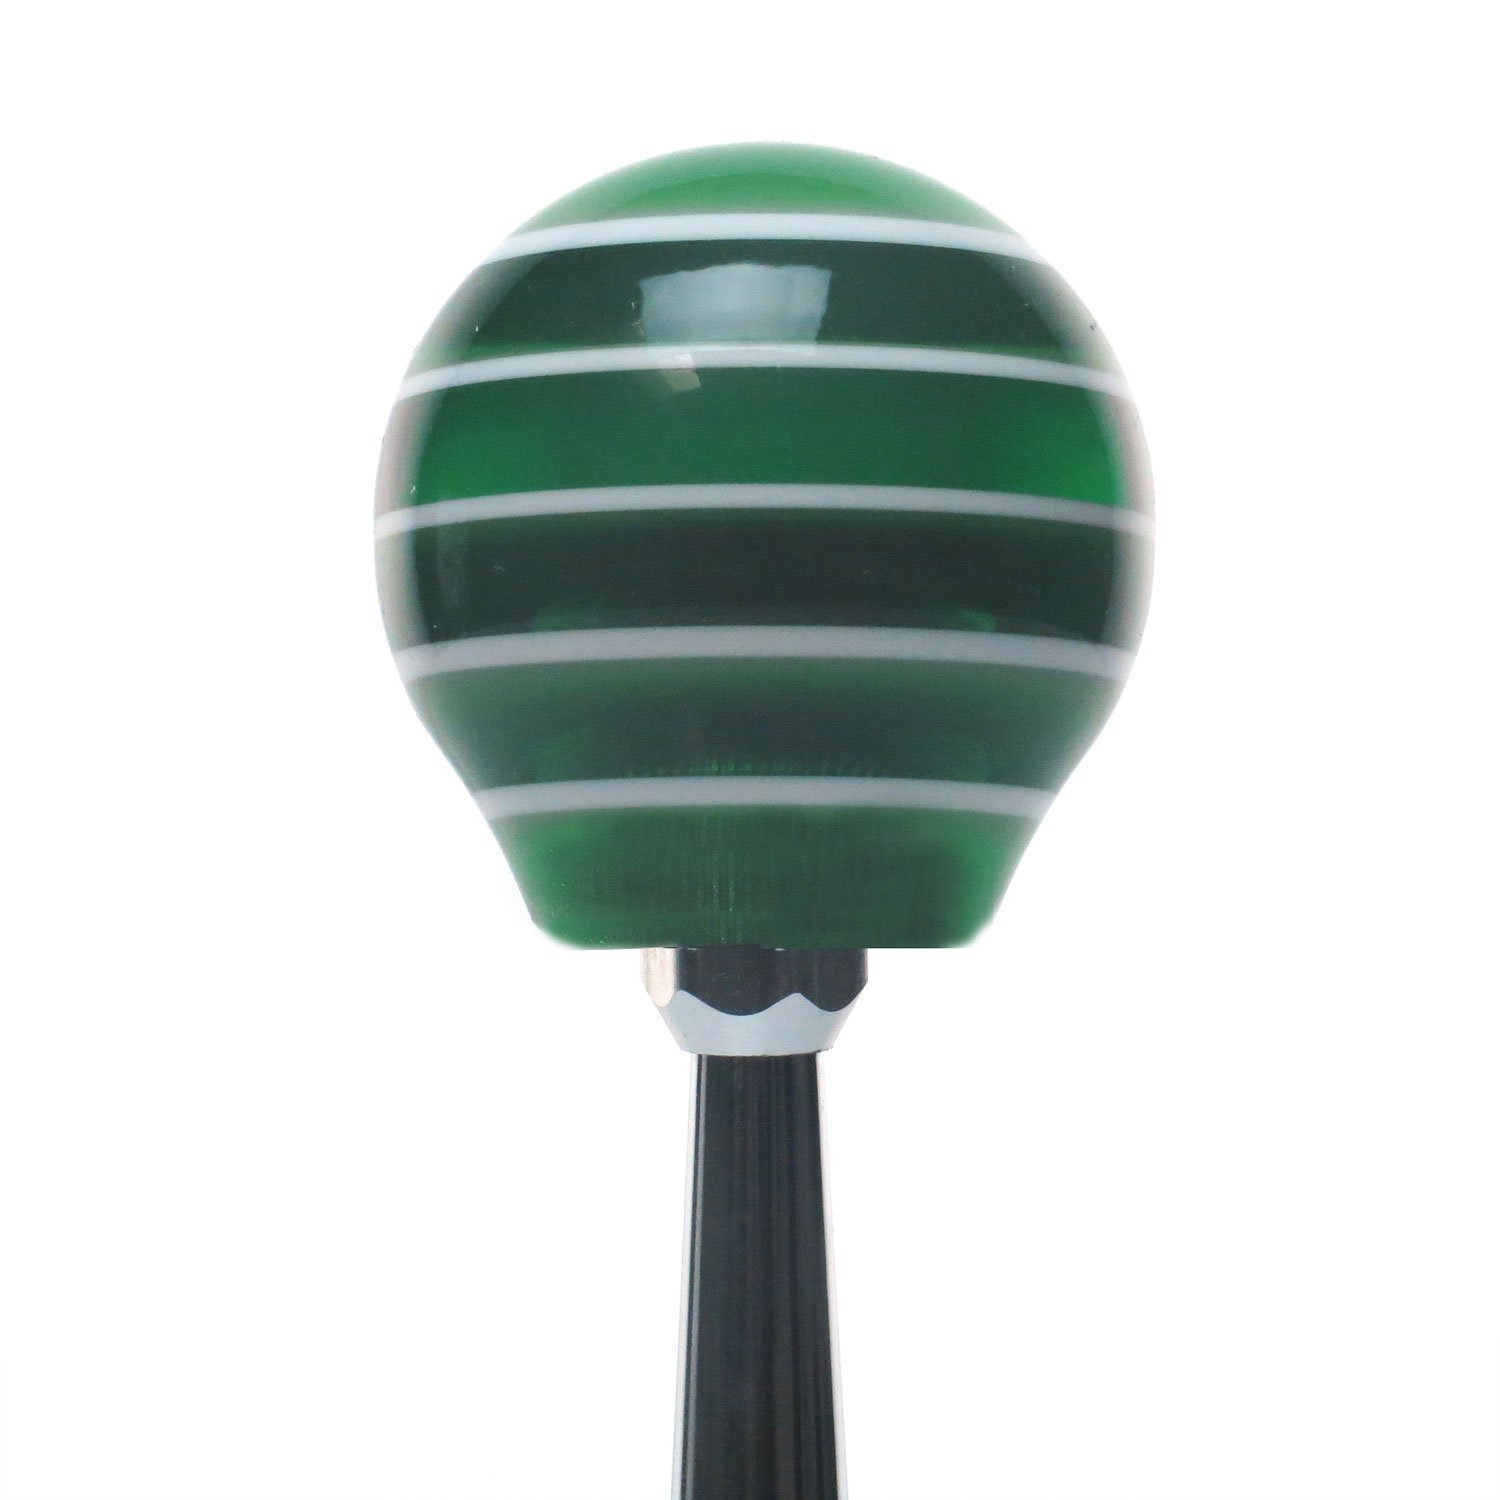 Red Bubble Directional Arrow Up American Shifter 121253 Green Stripe Shift Knob with M16 x 1.5 Insert